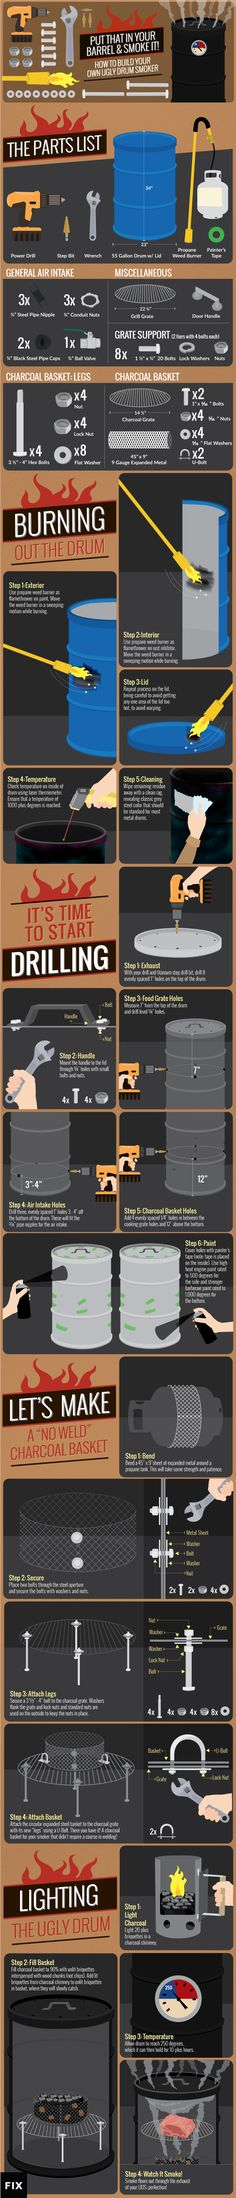 #Smoker aus Ölfass selbstbauen. Build your own ugly drum Smoker #diy #infographic